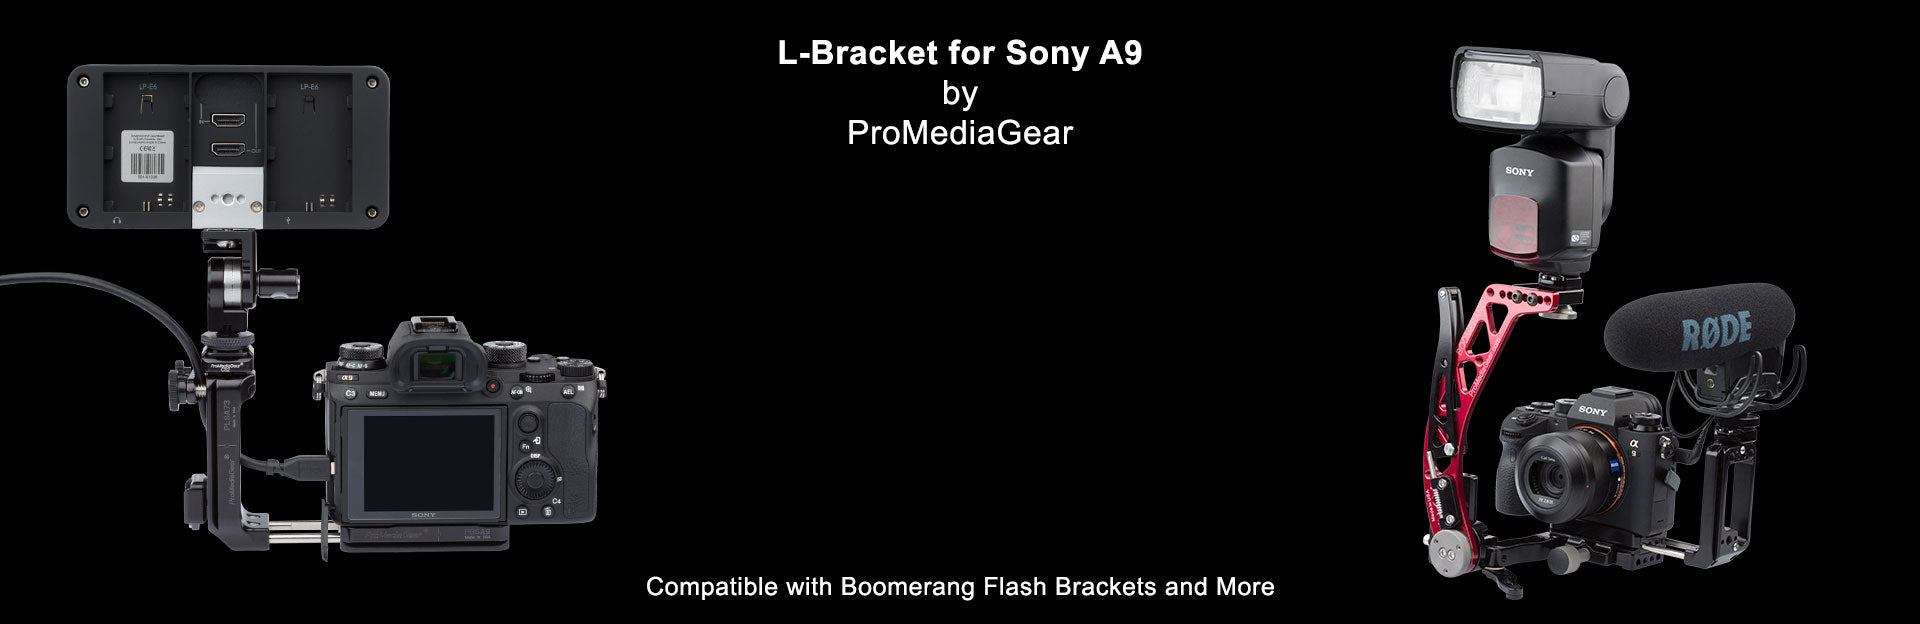 Ready for Anything attach Boomerang Flash Bracket and More